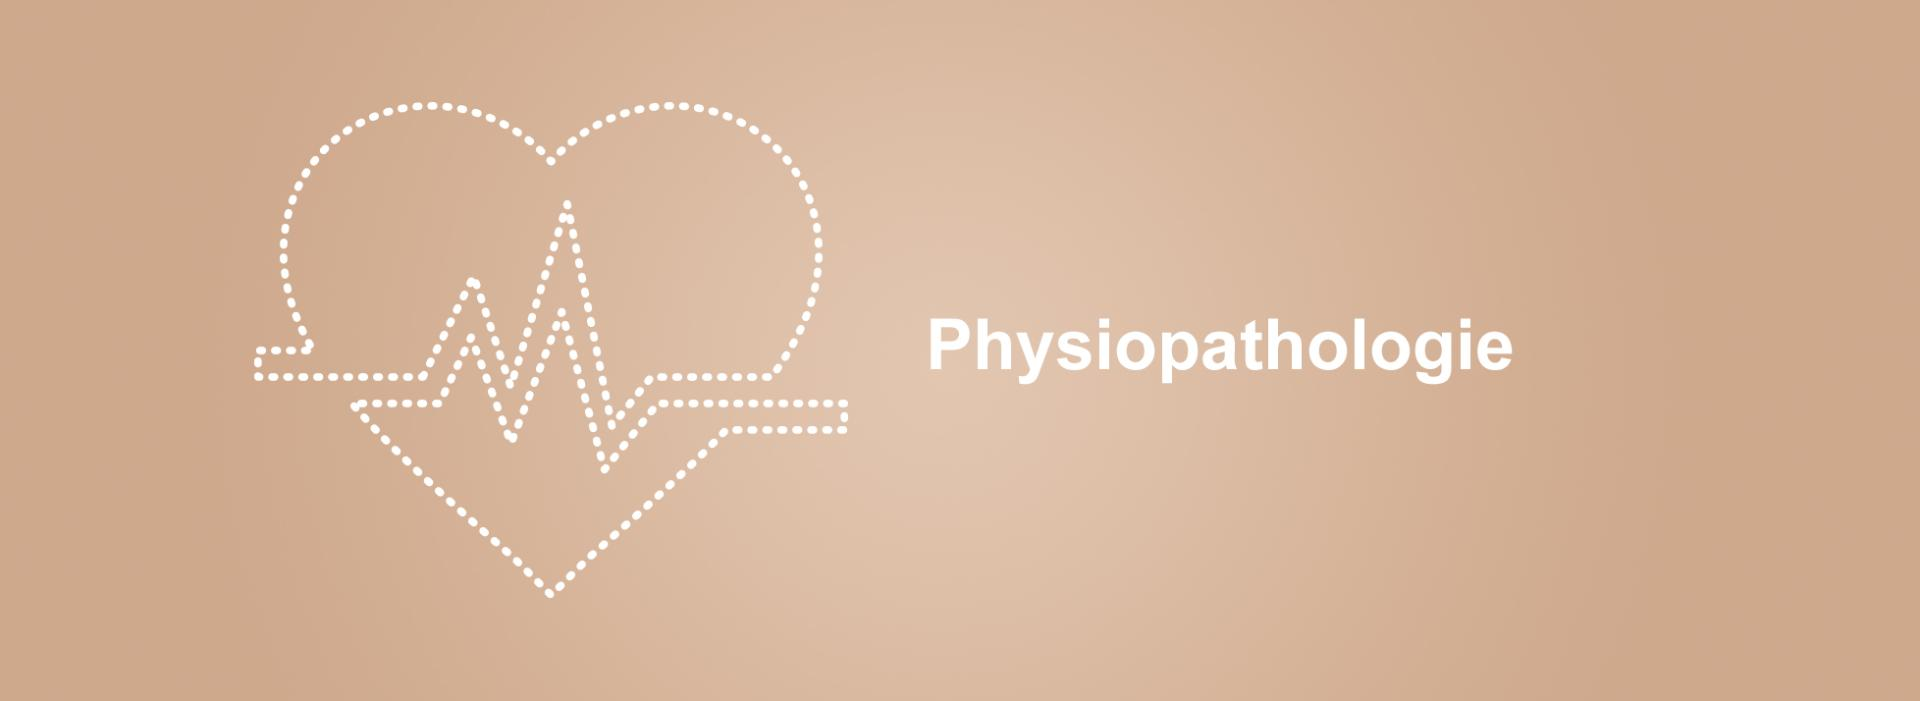 Physiopathologie,